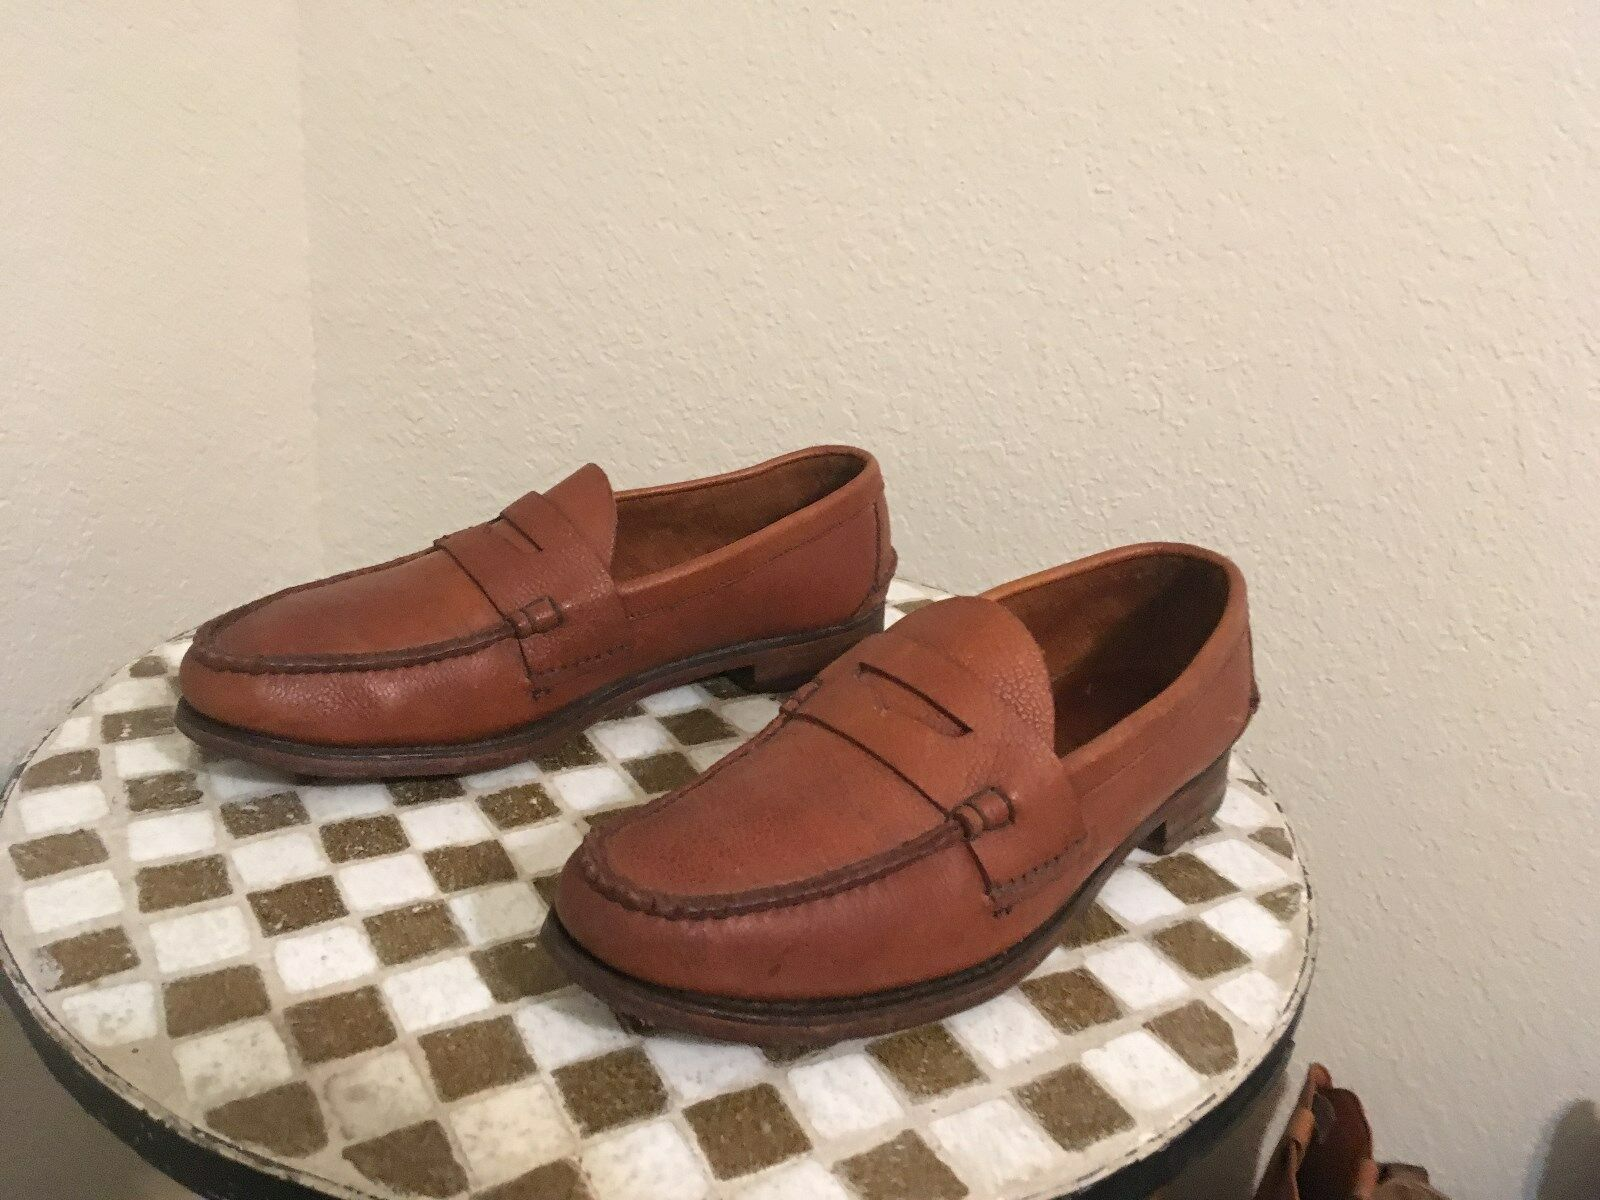 VINTAGE POLO RALPH LAUREN BROWN SLIP ON DRIVING PENNY LOAFER SHOES 9.5 M